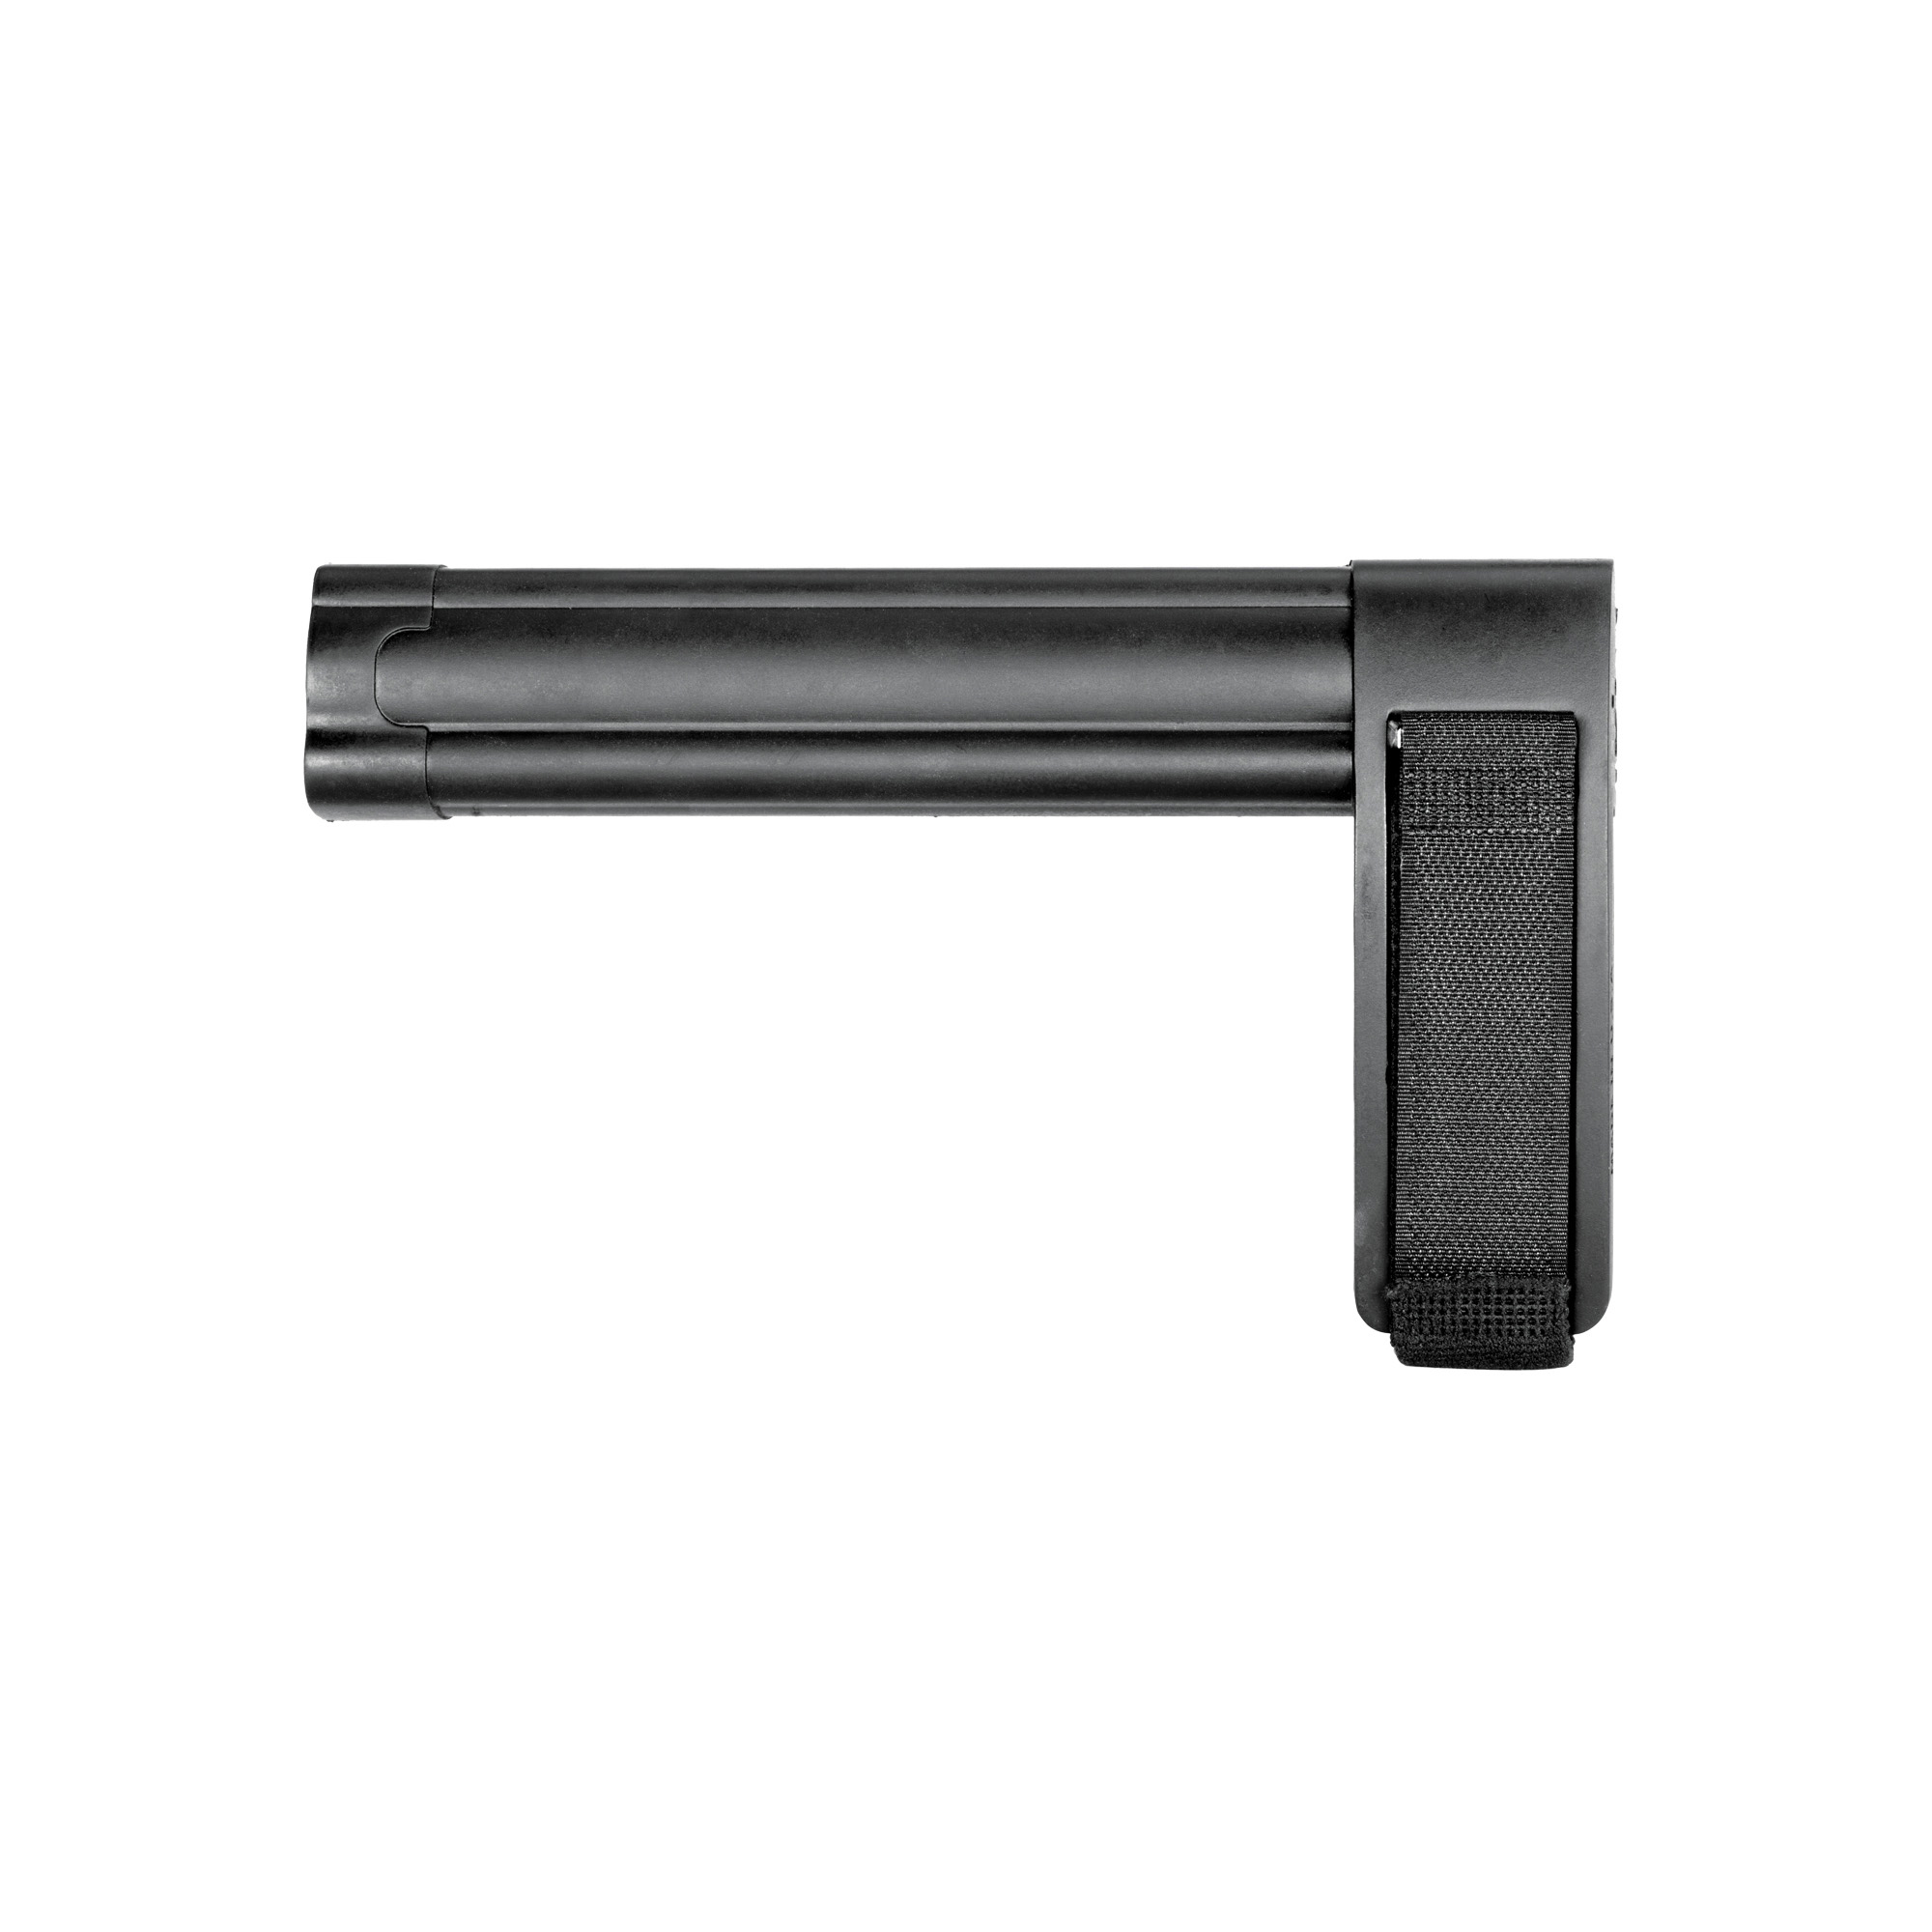 """The SBL is the lowest profile"""" full cavity Pistol Stabilizing Brace available. The minimalist design adapts to AR and AK host pistols"""" as well as many specialty platforms. US veteran designed and proudly made in the USA"""